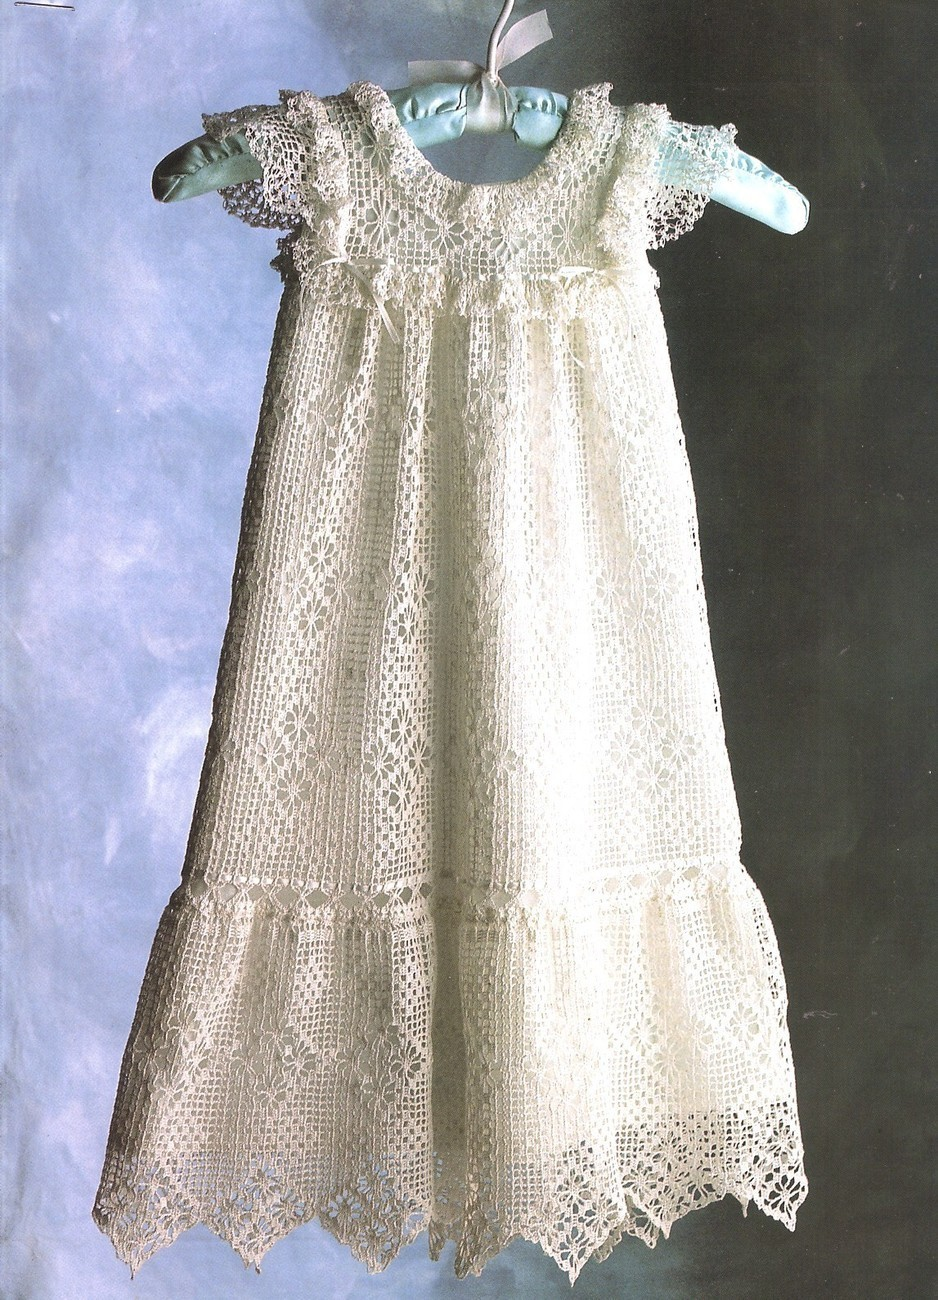 Annies Attic Crochet Patterns : Crochet ? SOLD: Antique Baby Dress Crochet Pattern Gown Annies Attic ...